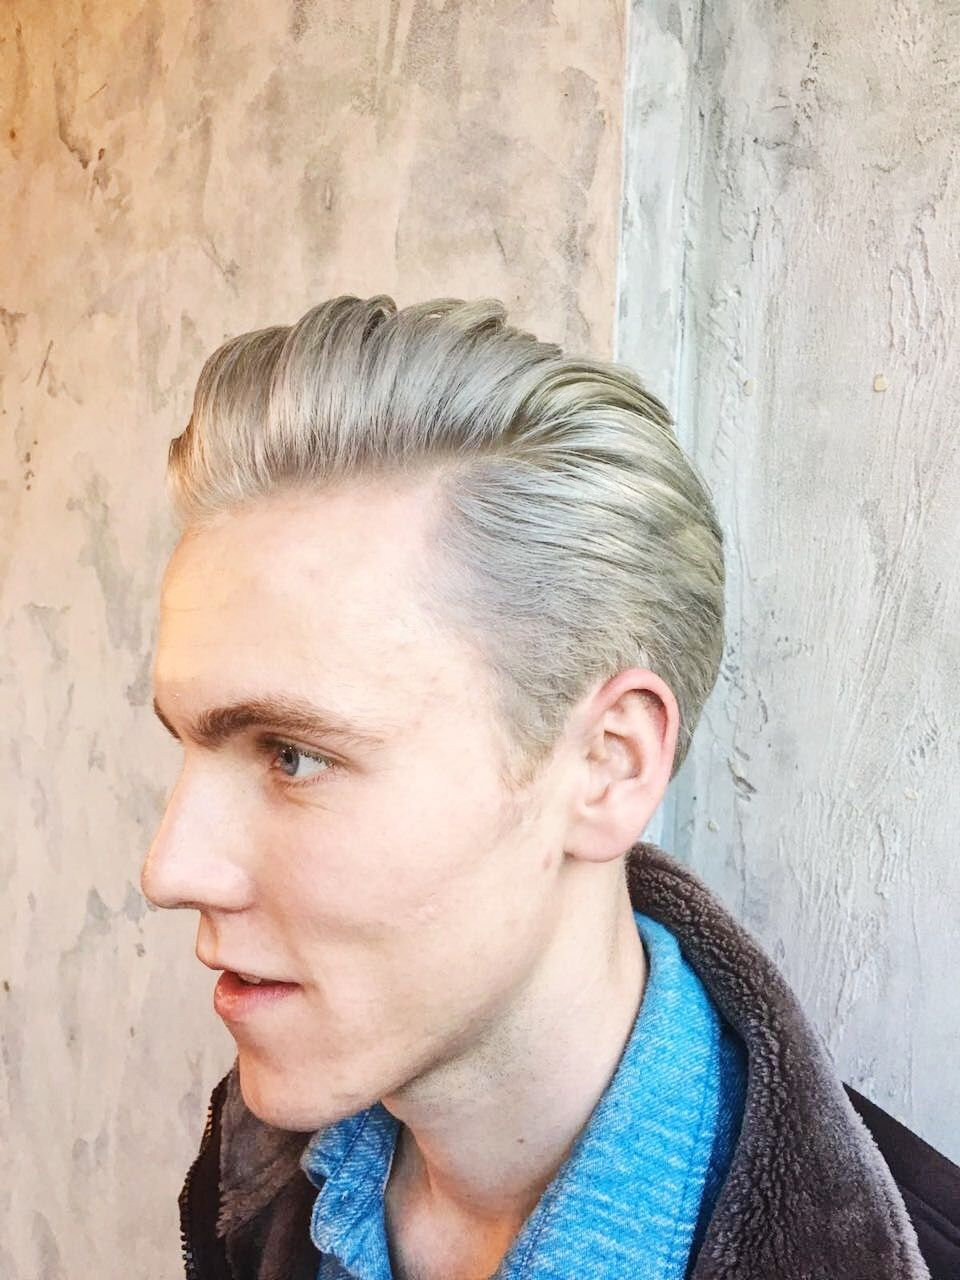 Classic Slicked Back Men S Haircut And Hairstyle London Hairdresser For More Hairstyles And Our List Of Hair S London Hair Salon Best Hair Salon Salon London